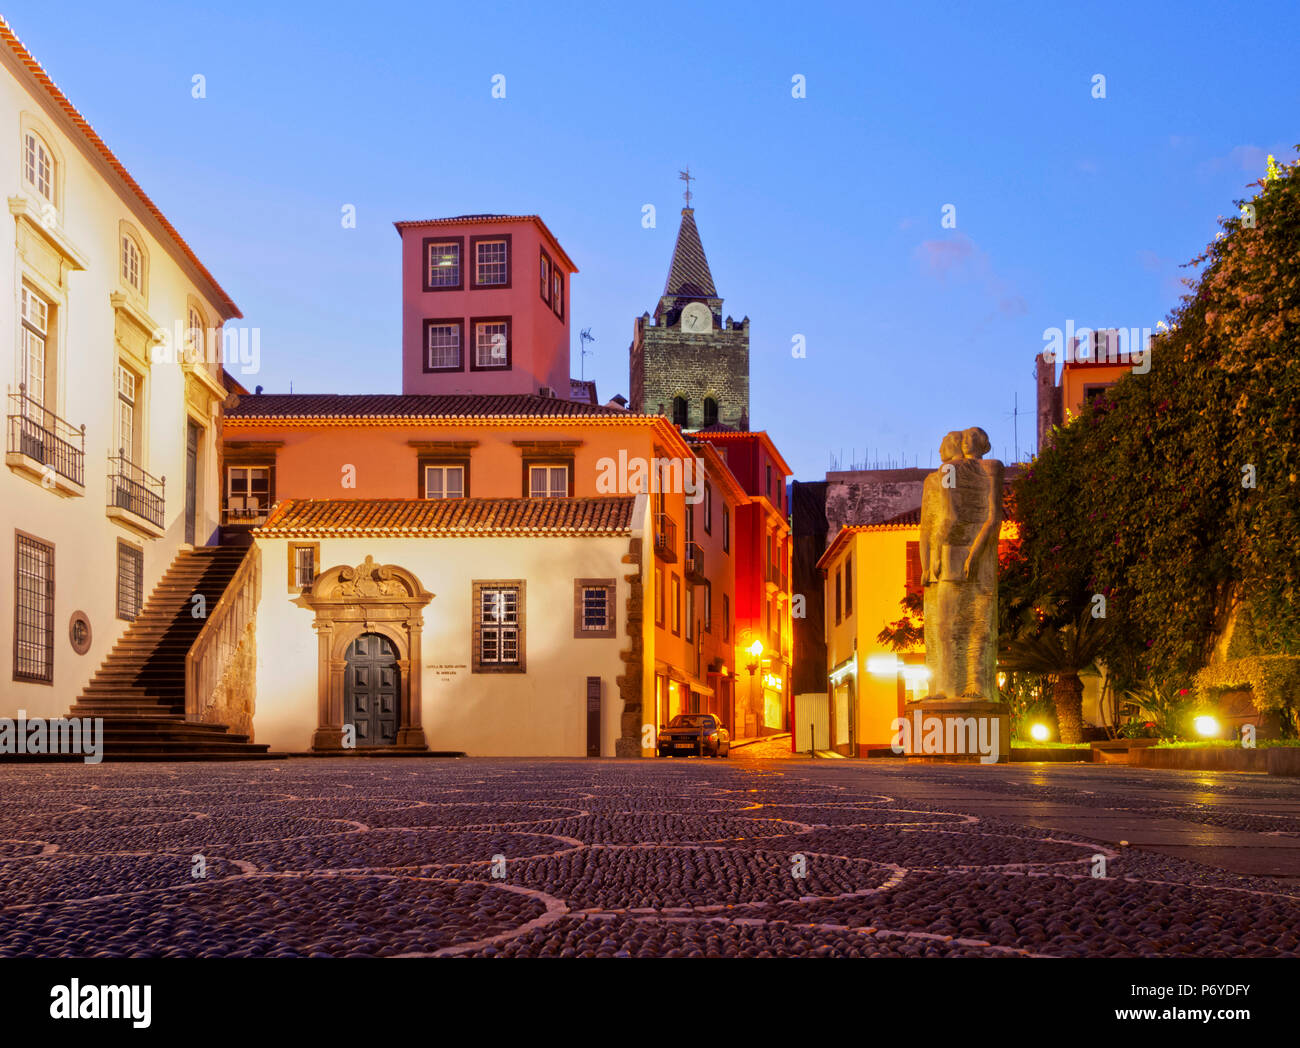 Portugal, Madeira, Funchal, Twilight view of the Old Town. - Stock Image